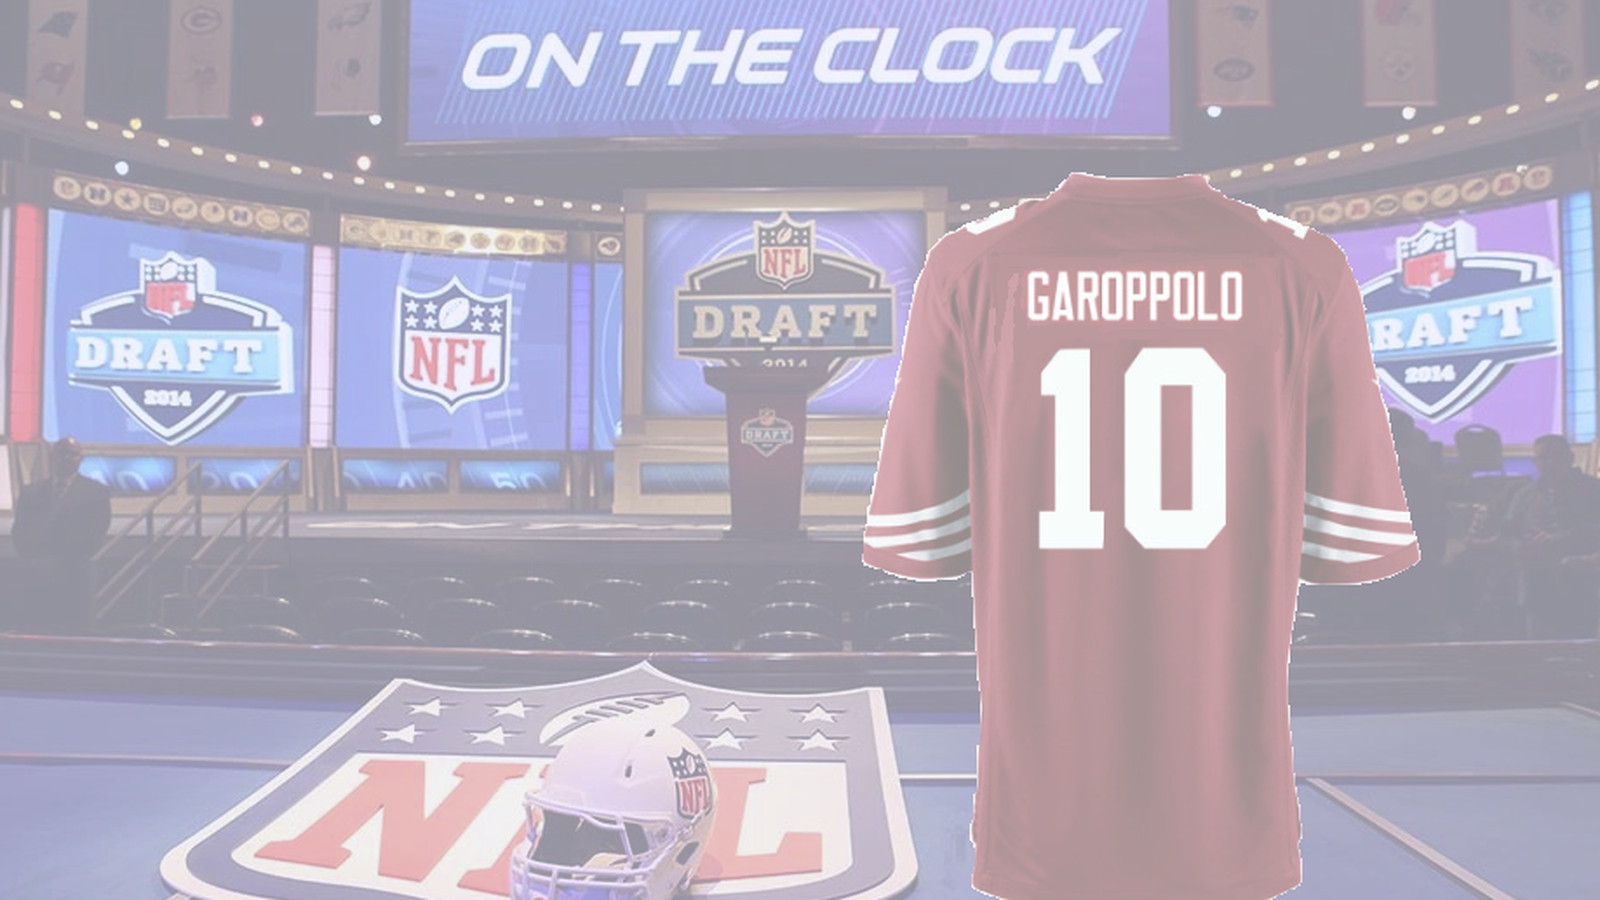 separation shoes f2a64 bc0fe How Jimmy Garoppolo becomes a 49er - Niners Nation